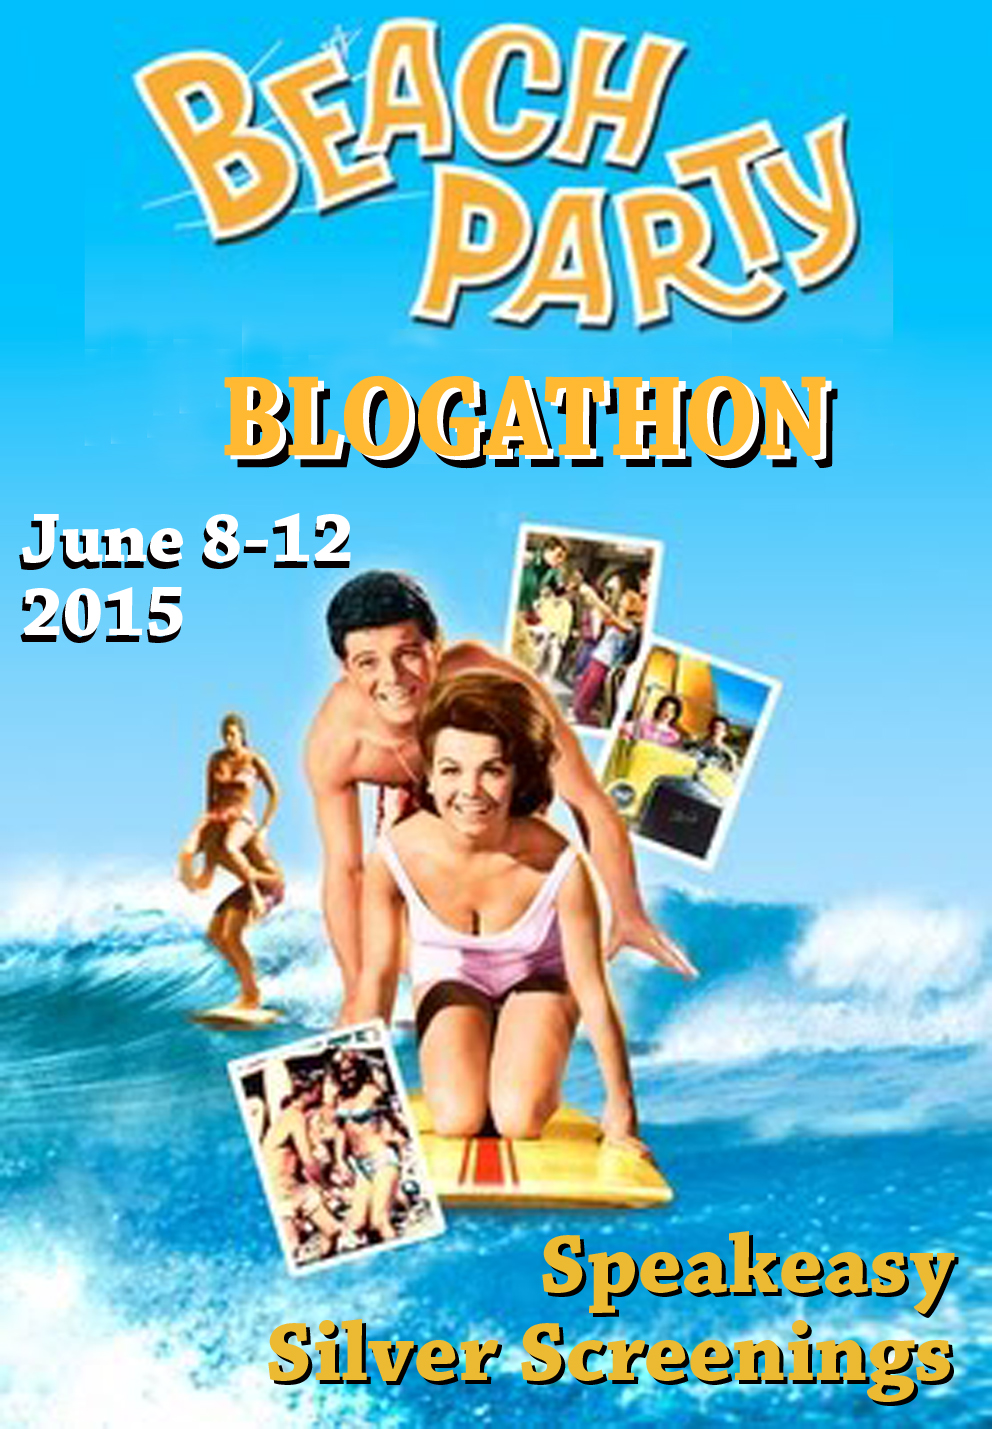 Beach Party Films: the Fashion, Music and Pop Culture, Daddy-O ...